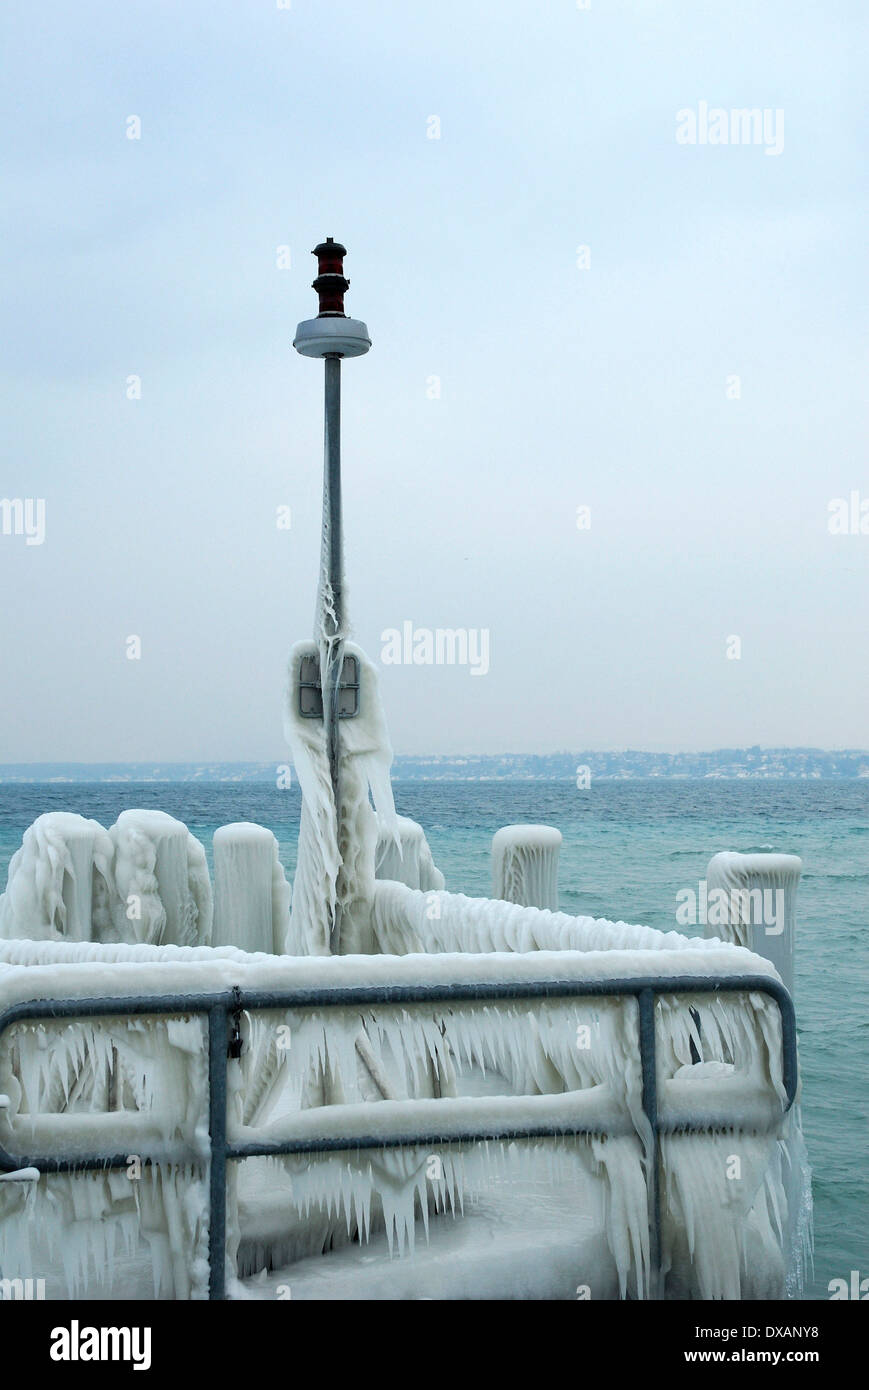 Handrail of landing stage covered with ice - Stock Image